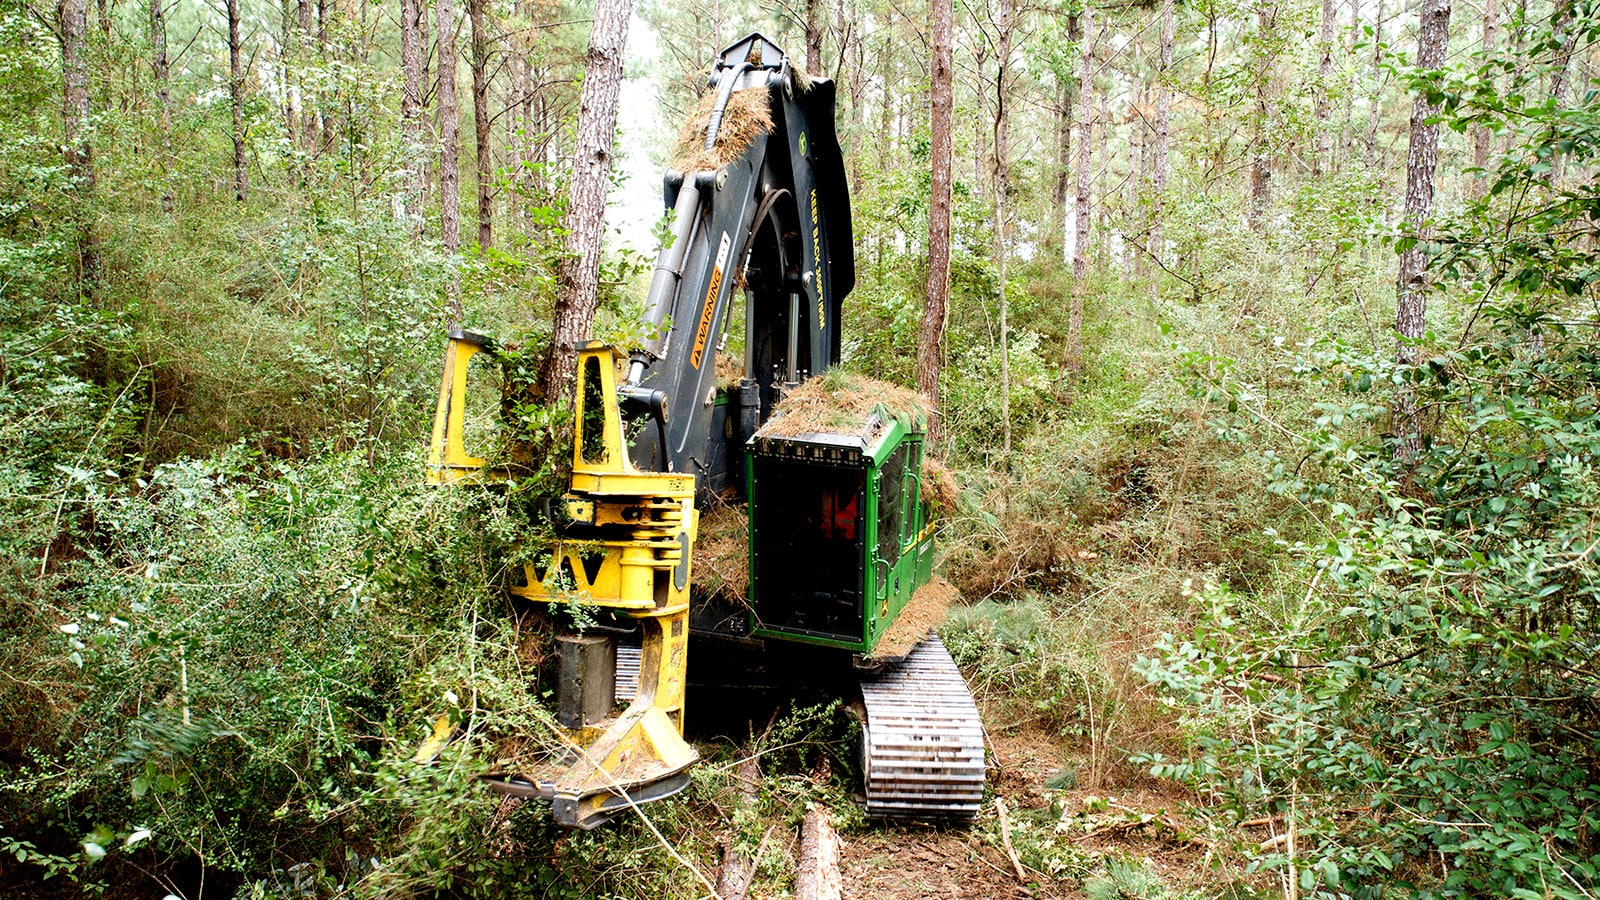 A feller buncher with pine needles on top of the cab works in the woods, cutting down a tree.